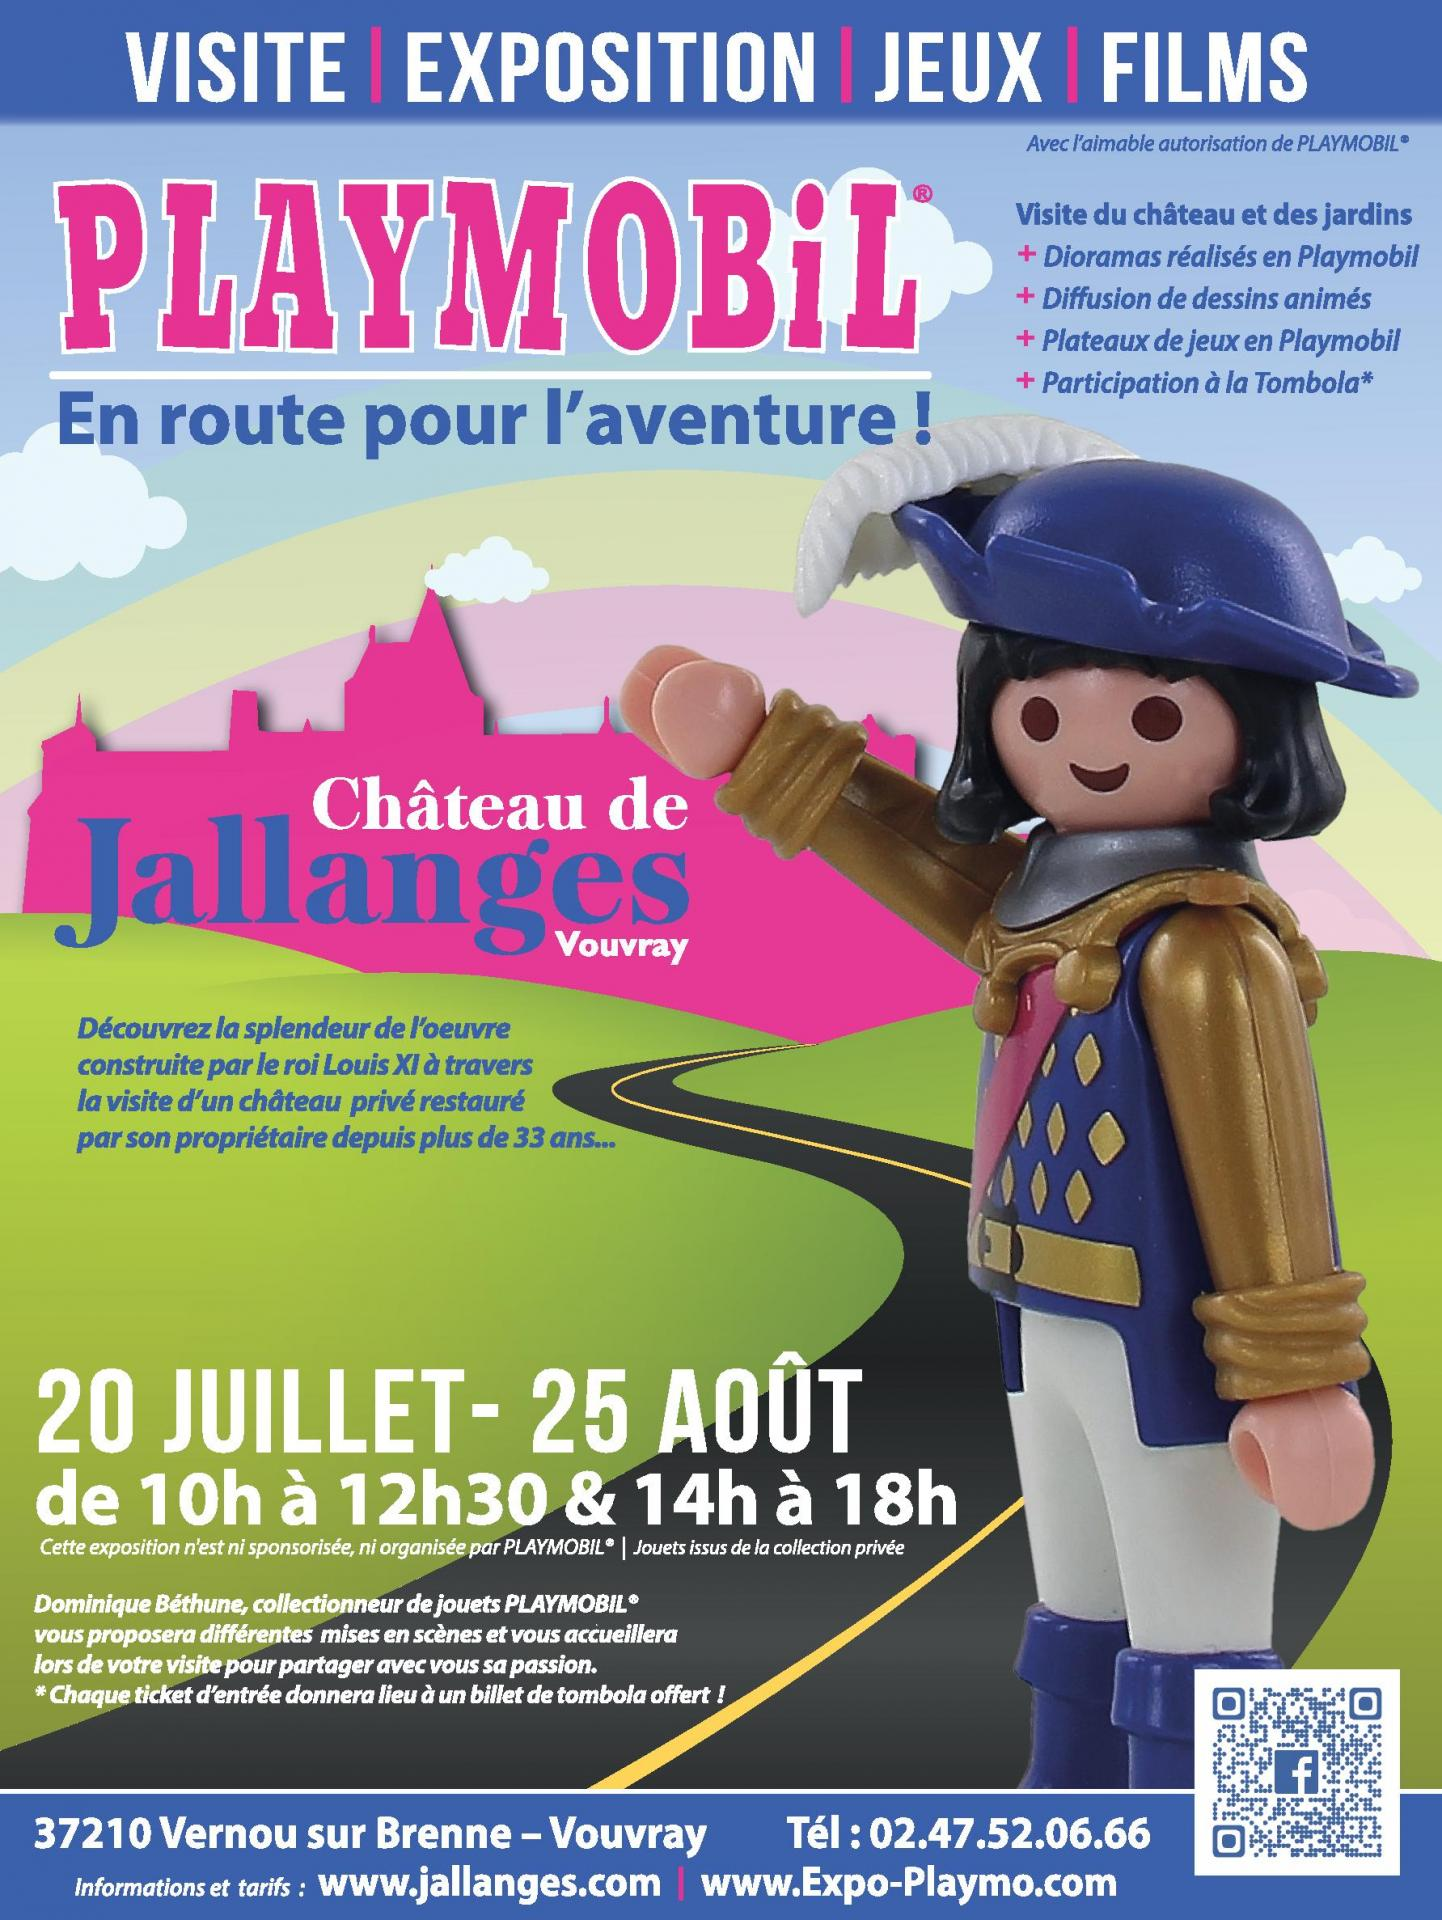 Exposition playmobil chateau jallanges ete 2019 dominique bethune